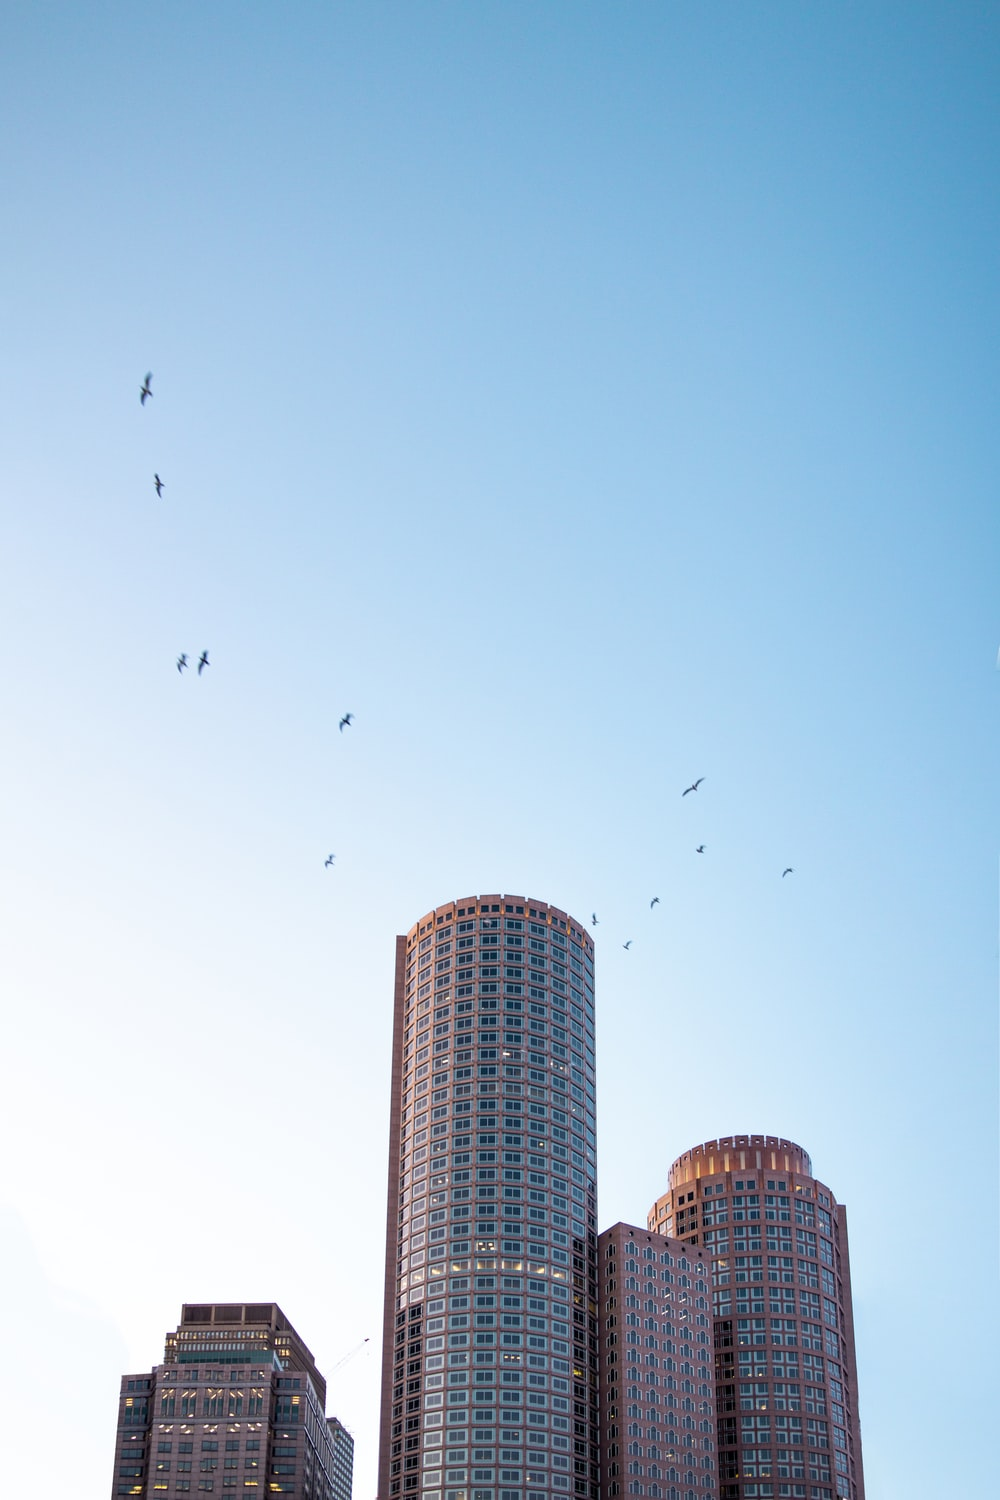 birds flying over high rise building during daytime